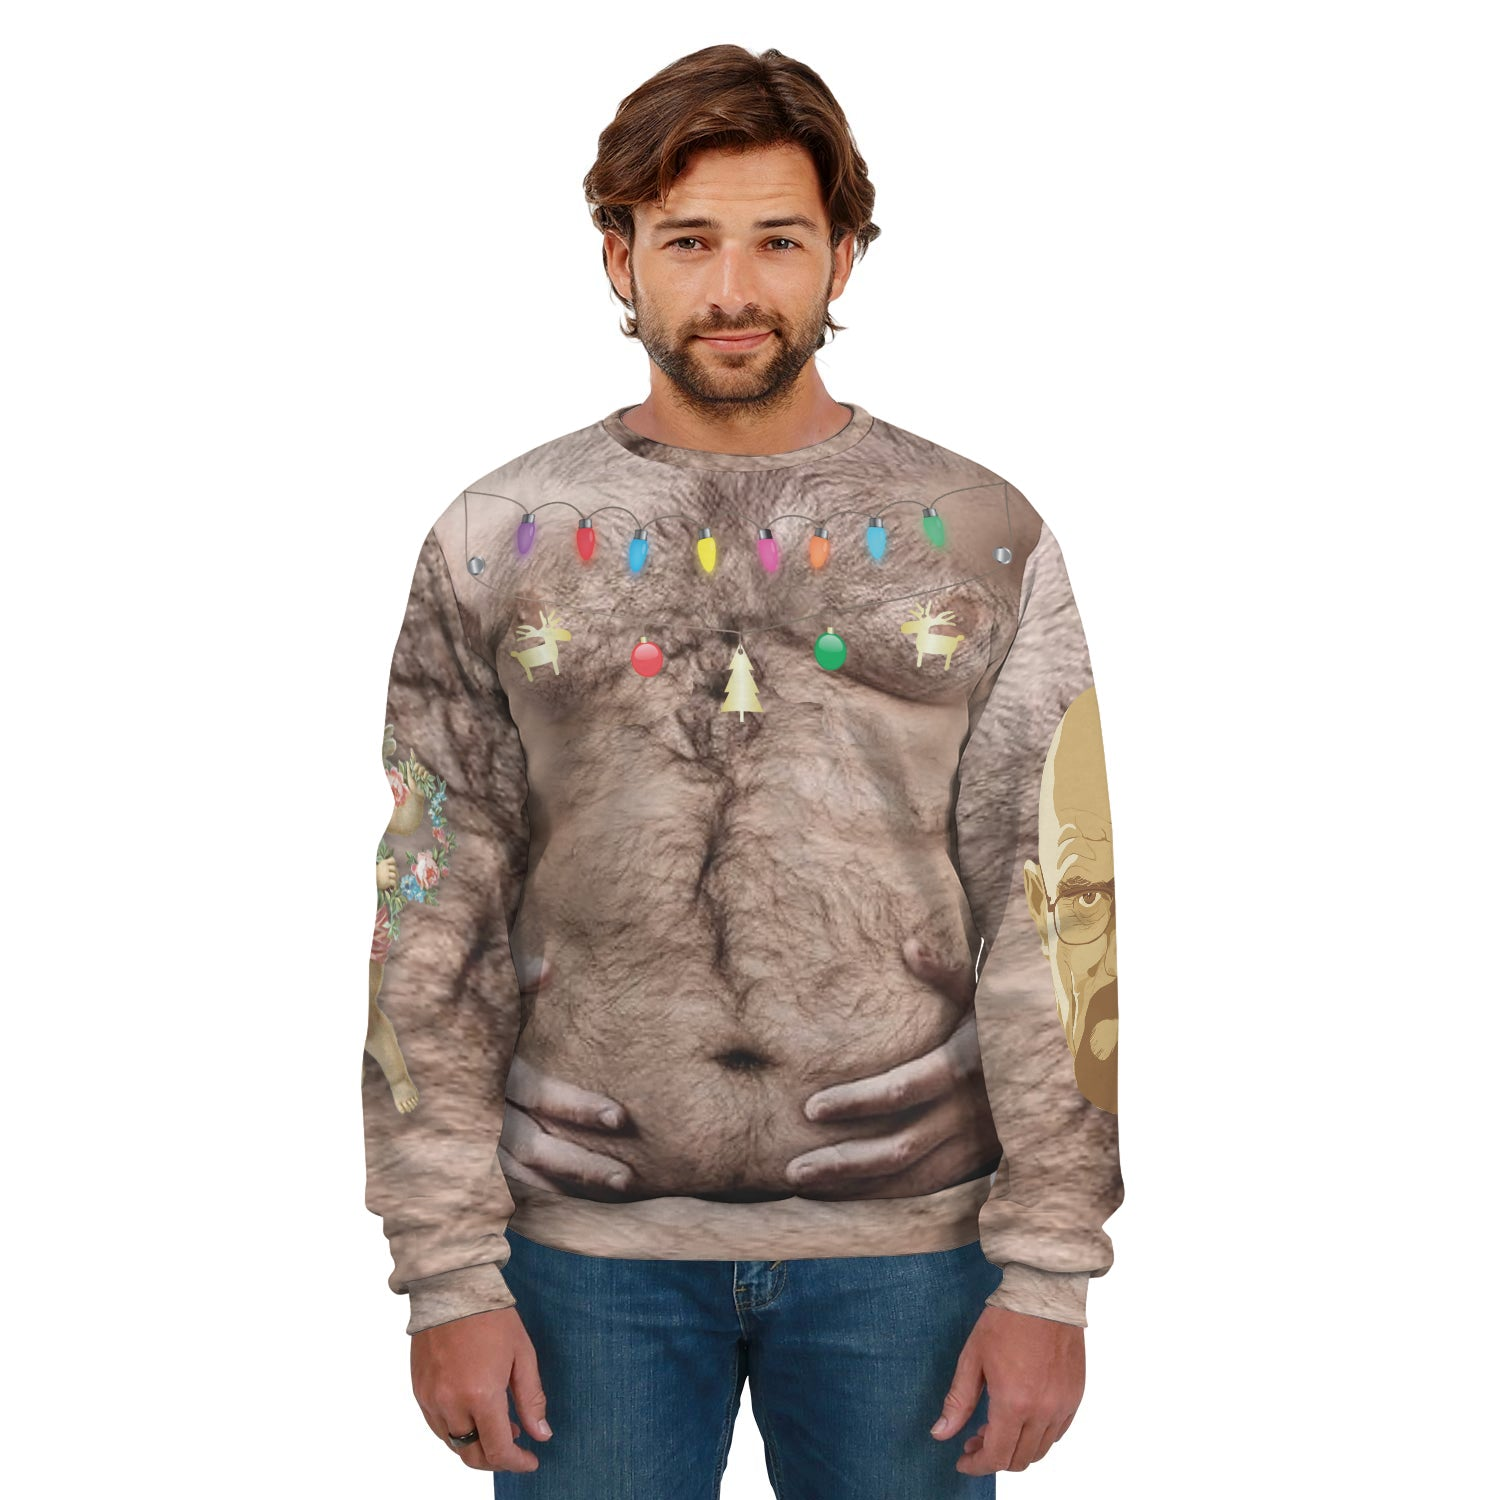 Festive Hairy Dude 2 Ugly Sweater